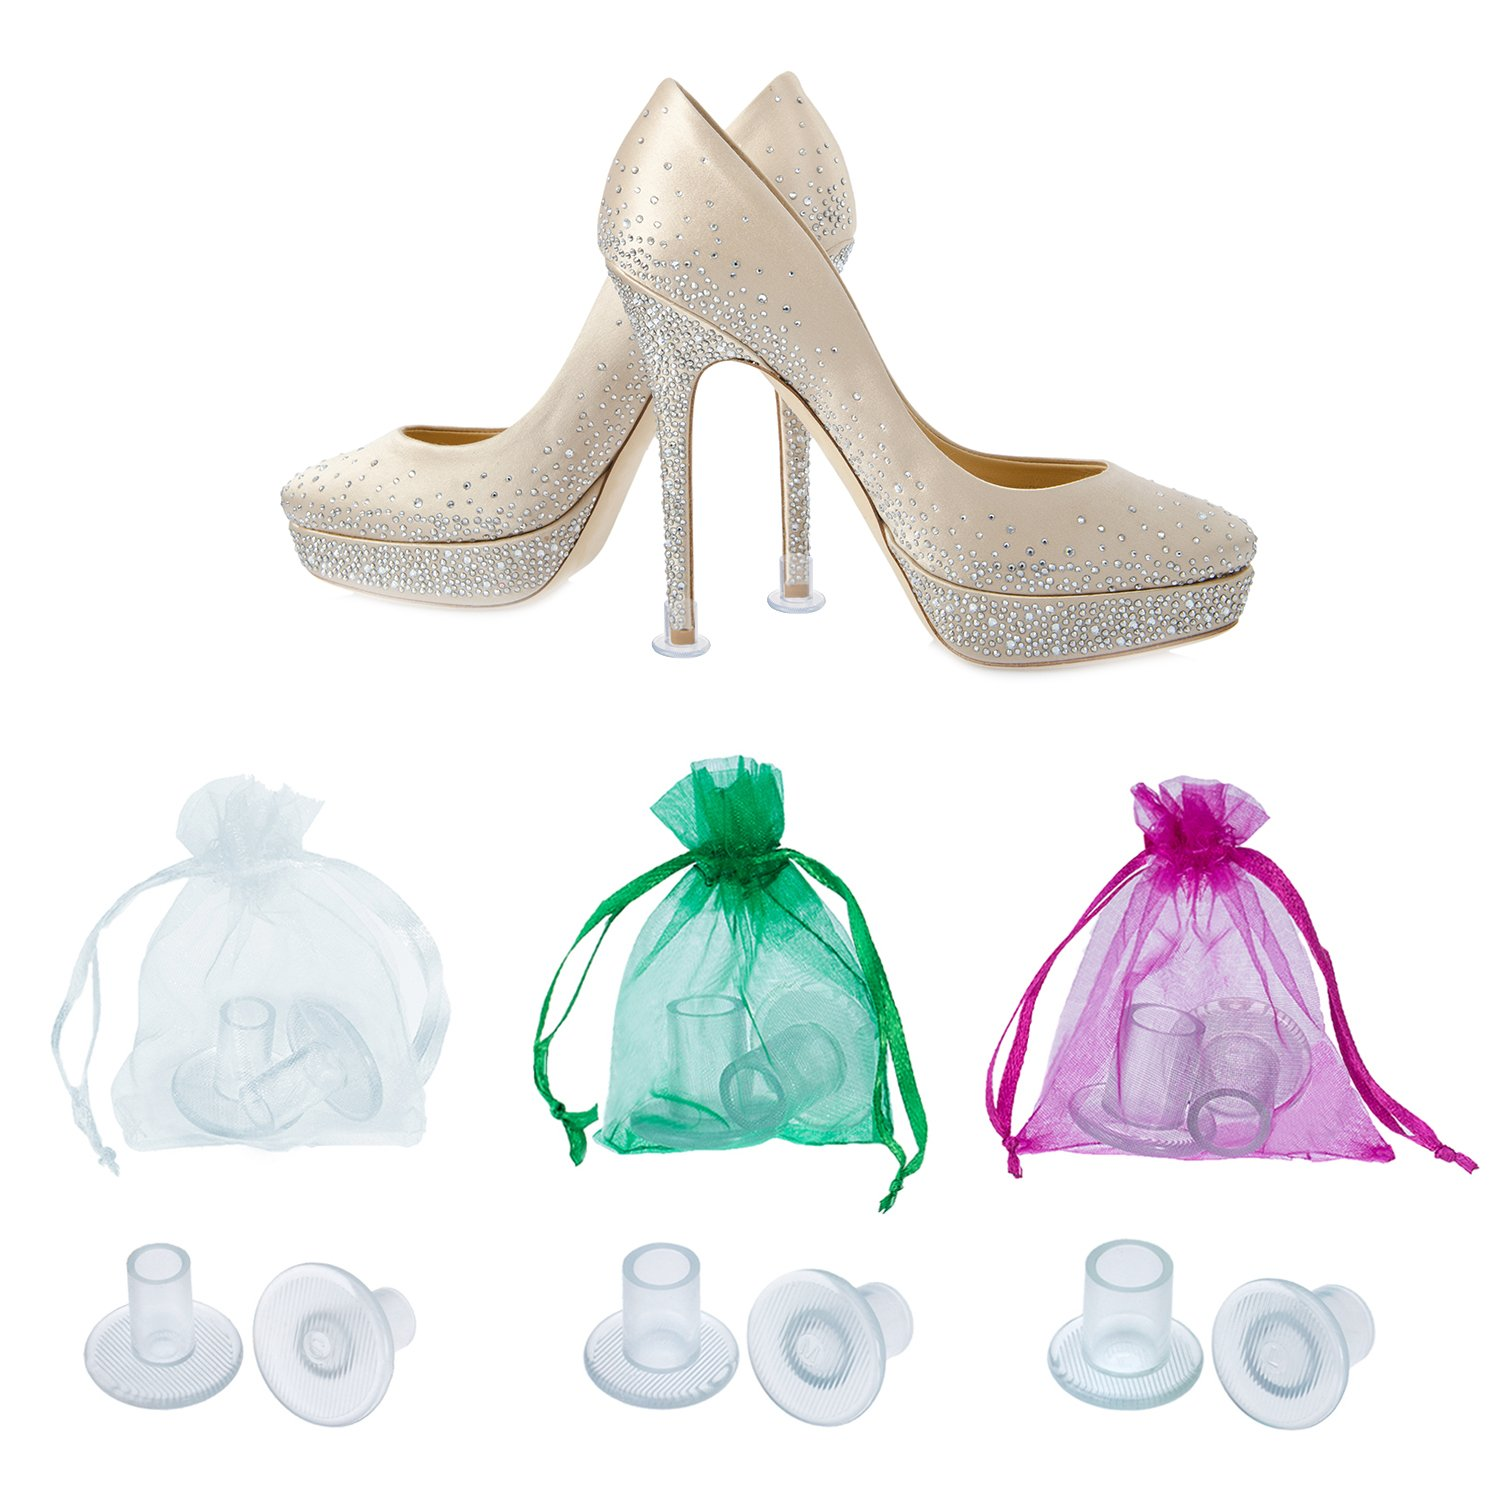 TOODOO 12 Pairs Heel Stoppers High Heel Protectors for Women's Shoes, Small/Middle/Large, Transparent by TOODOO